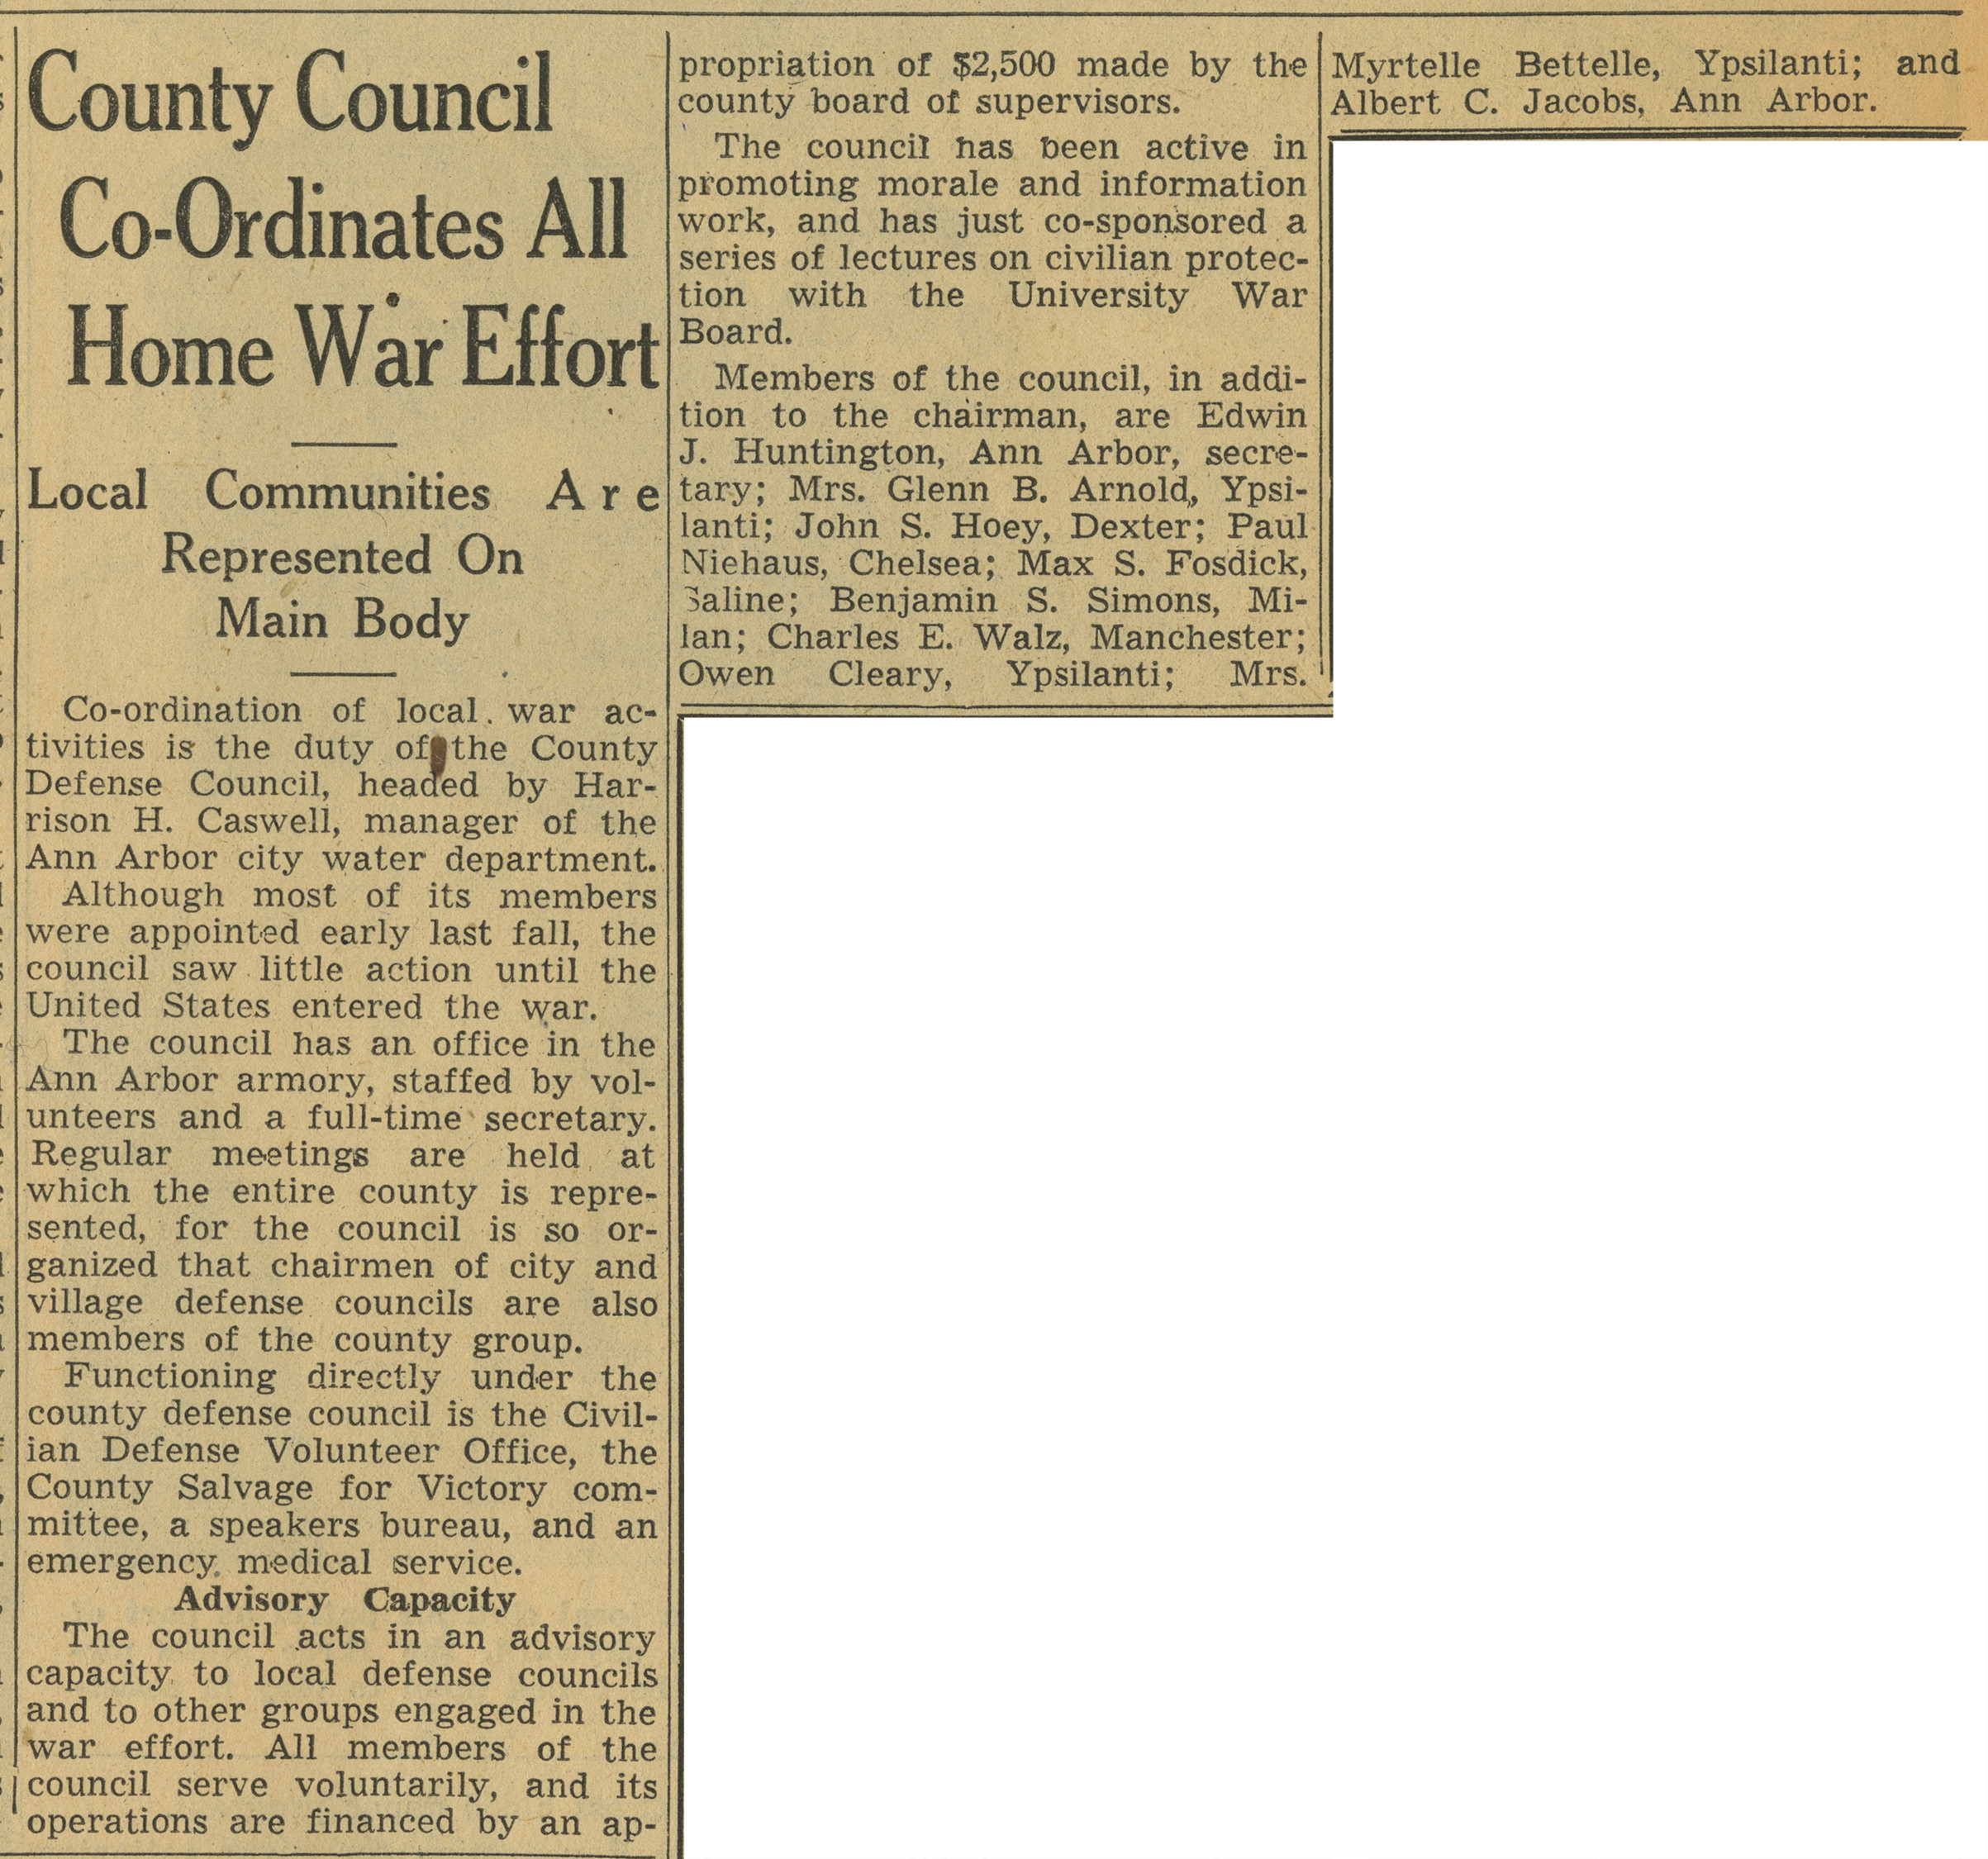 County Council Co-Ordinates All Home War Effort image